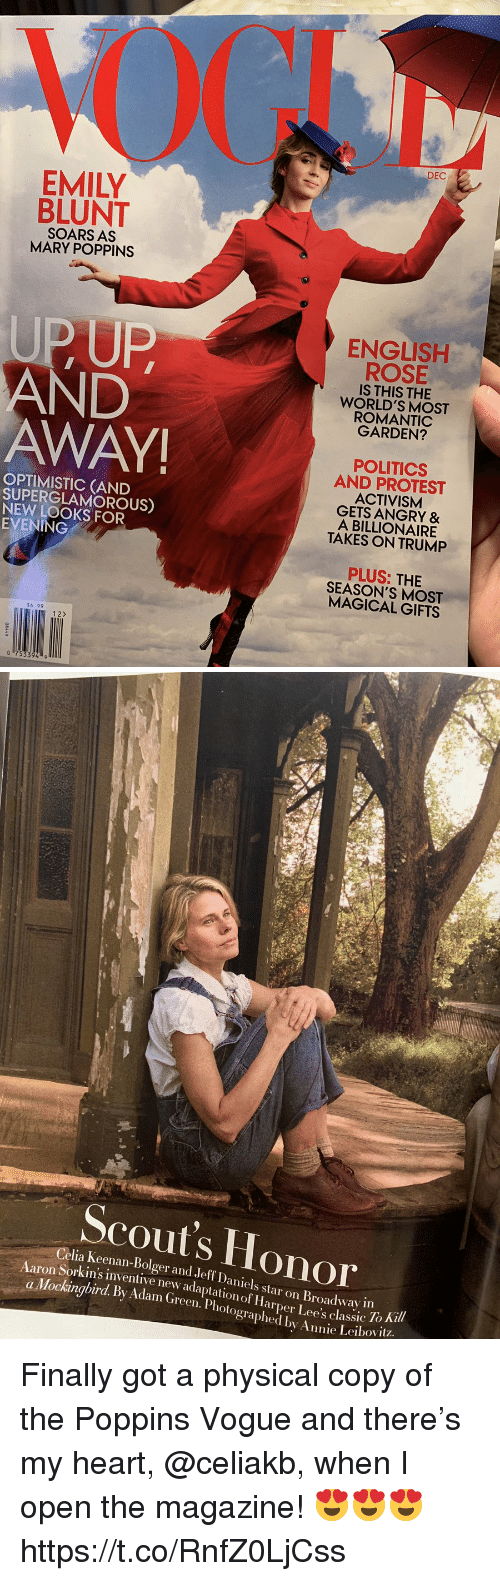 Emily Blunt, Memes, and Politics: DEC  EMILY  BLUNT  SOARS AS  MARY POPPINS  UPUP  AND  AWAY  ENGLISH  ROSE  IS THIS THE  WORLD'S MOST  ROMANTIC  GARDEN?  OPTIMISTIC (AND  SUPERGLAMOROUS)  NEW LOOKS FOR  EVENING  POLITICS  AND PROTEST  ACTIVISM  GETS ANGRY &  A BILLIONAIRE  TAKES ON TRUMP  PLUS: THIE  SEASON'S MOST  MAGICAL GIFTS  $6.99  12>   Scout's Honor  Celia Keenan-Bolger and Jeff Daniels star on Broadway in  Sorkin's inventive new adaptation of Harper Lee's classic 10  To Ki  a Mockingbird. By Adam (Green. Photographed by Annie Leibovit? Finally got a physical copy of the Poppins Vogue and there's my heart, @celiakb, when I open the magazine! 😍😍😍 https://t.co/RnfZ0LjCss